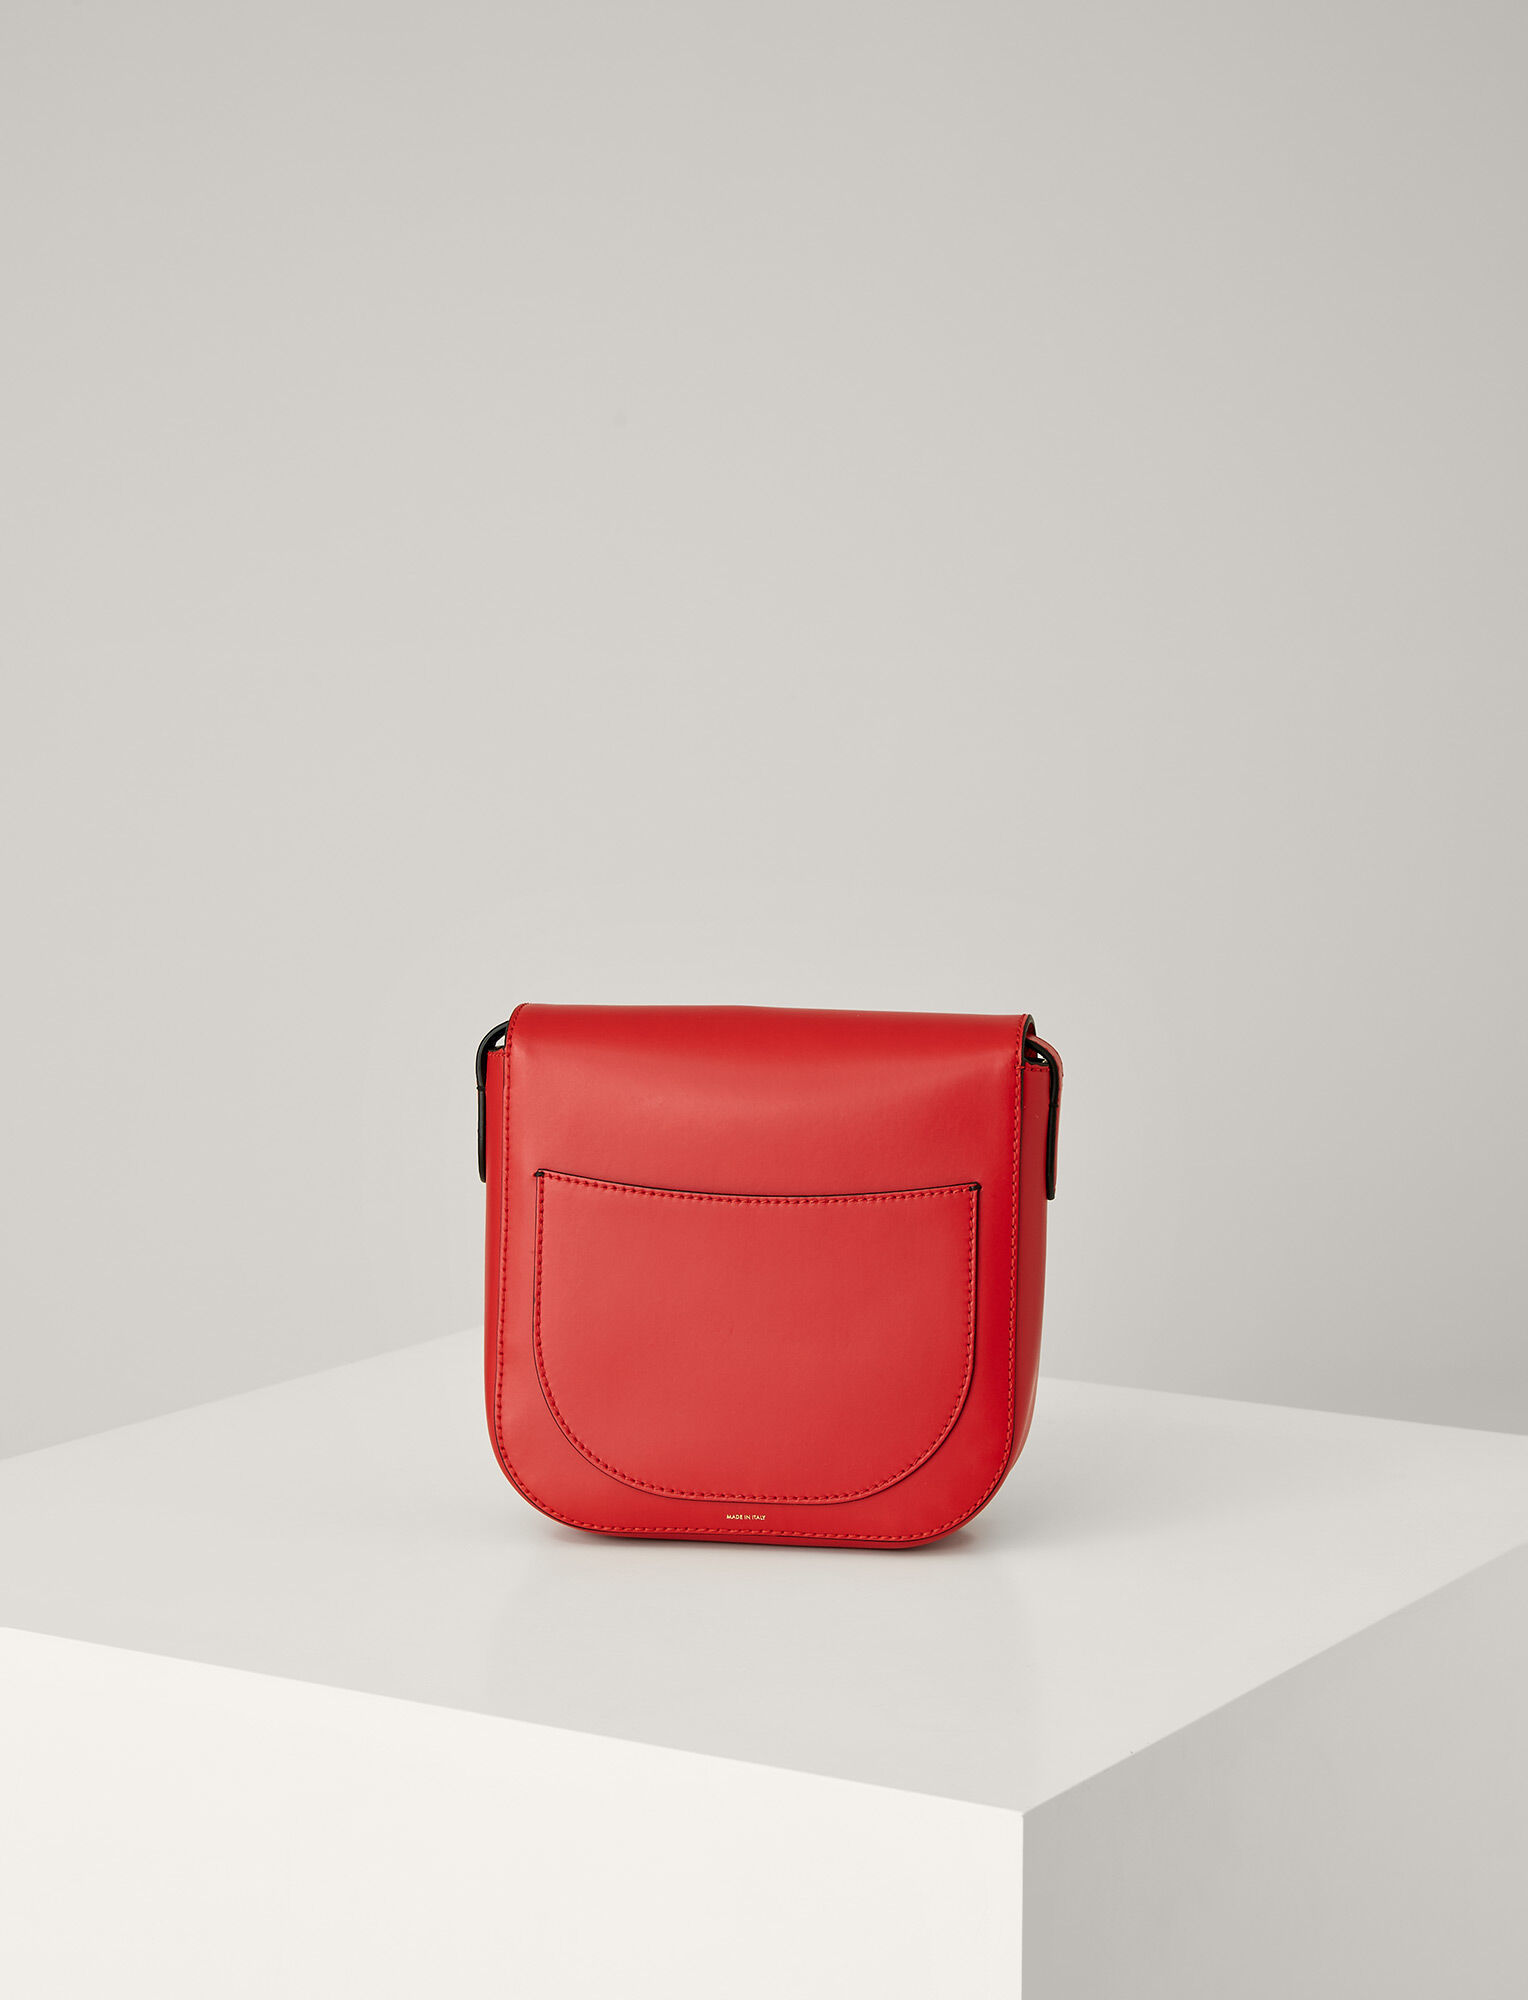 Joseph, Leather Knight 25 Bag, in RED